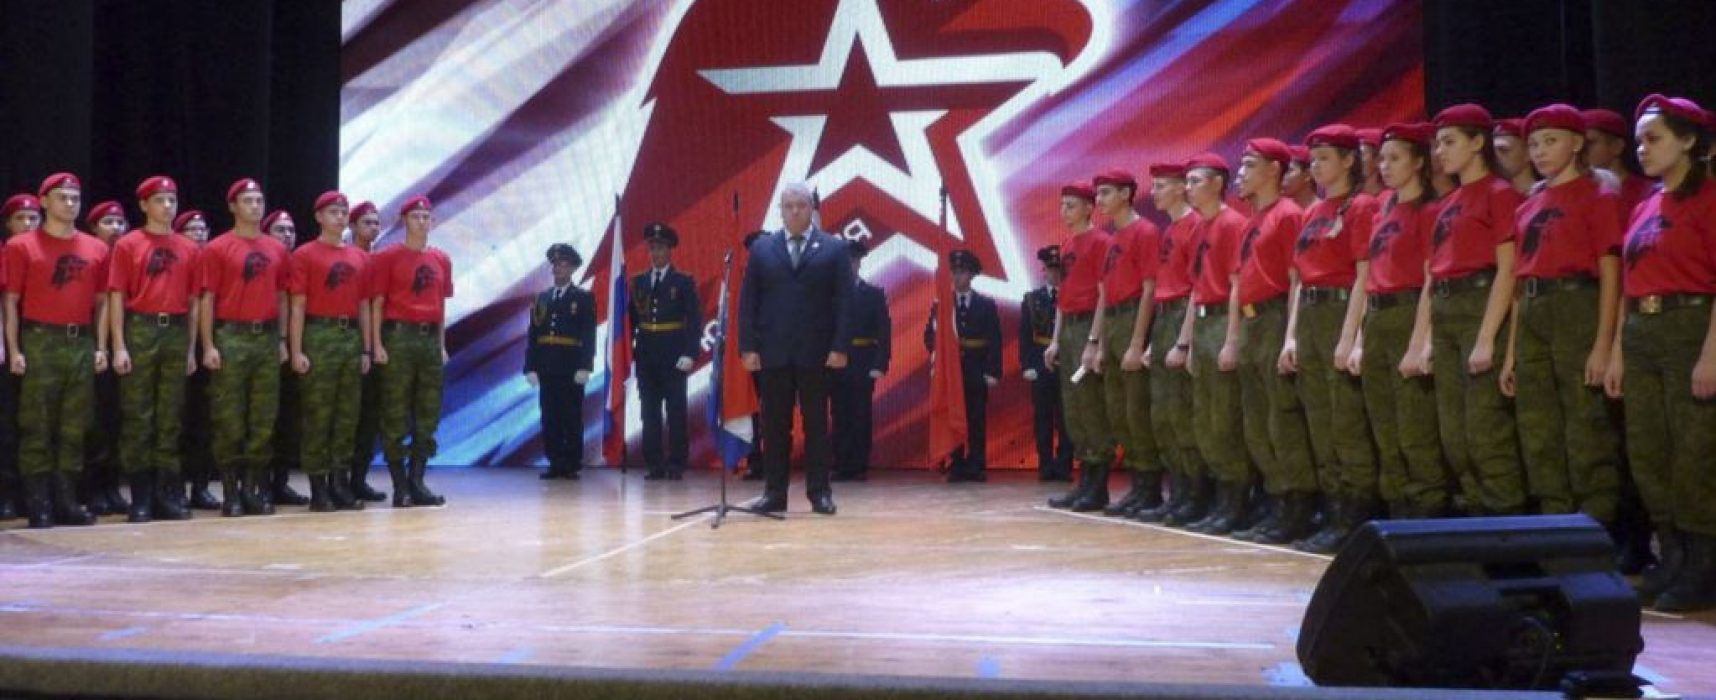 Does Russia Really Oppose Teaching Nationalism to Kids?